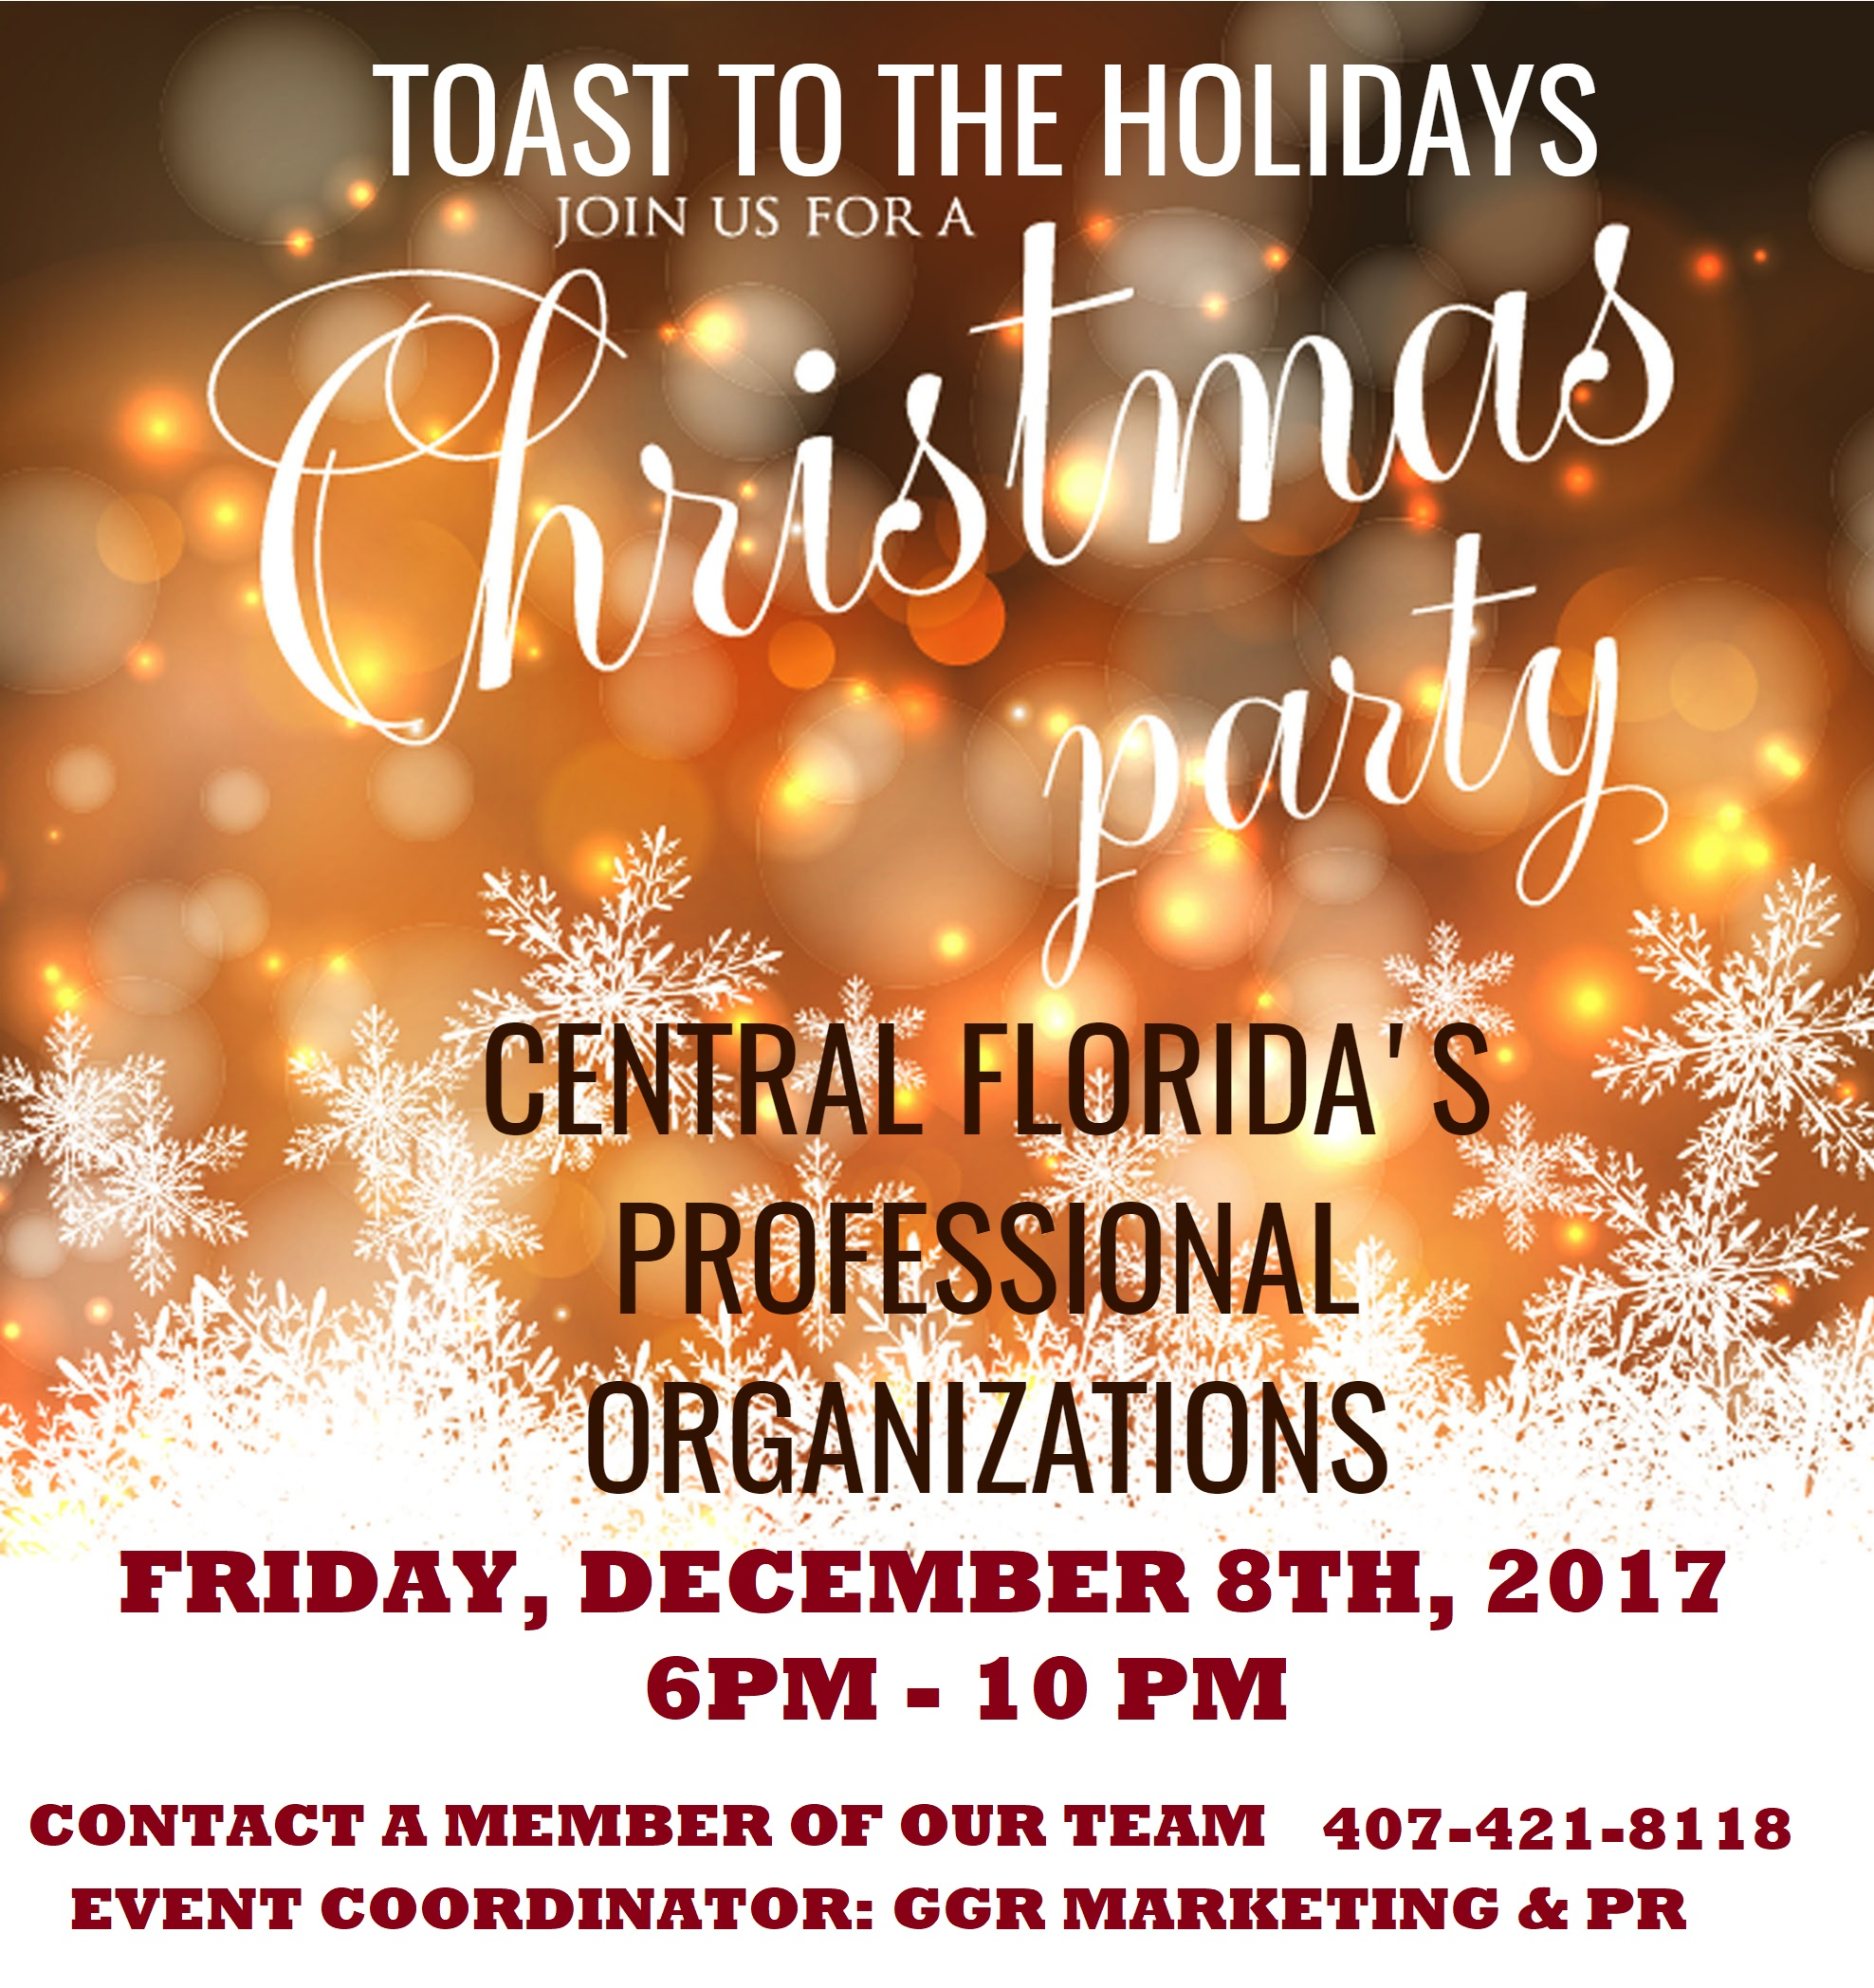 6th Annual Toast to the Holidays Christmas party